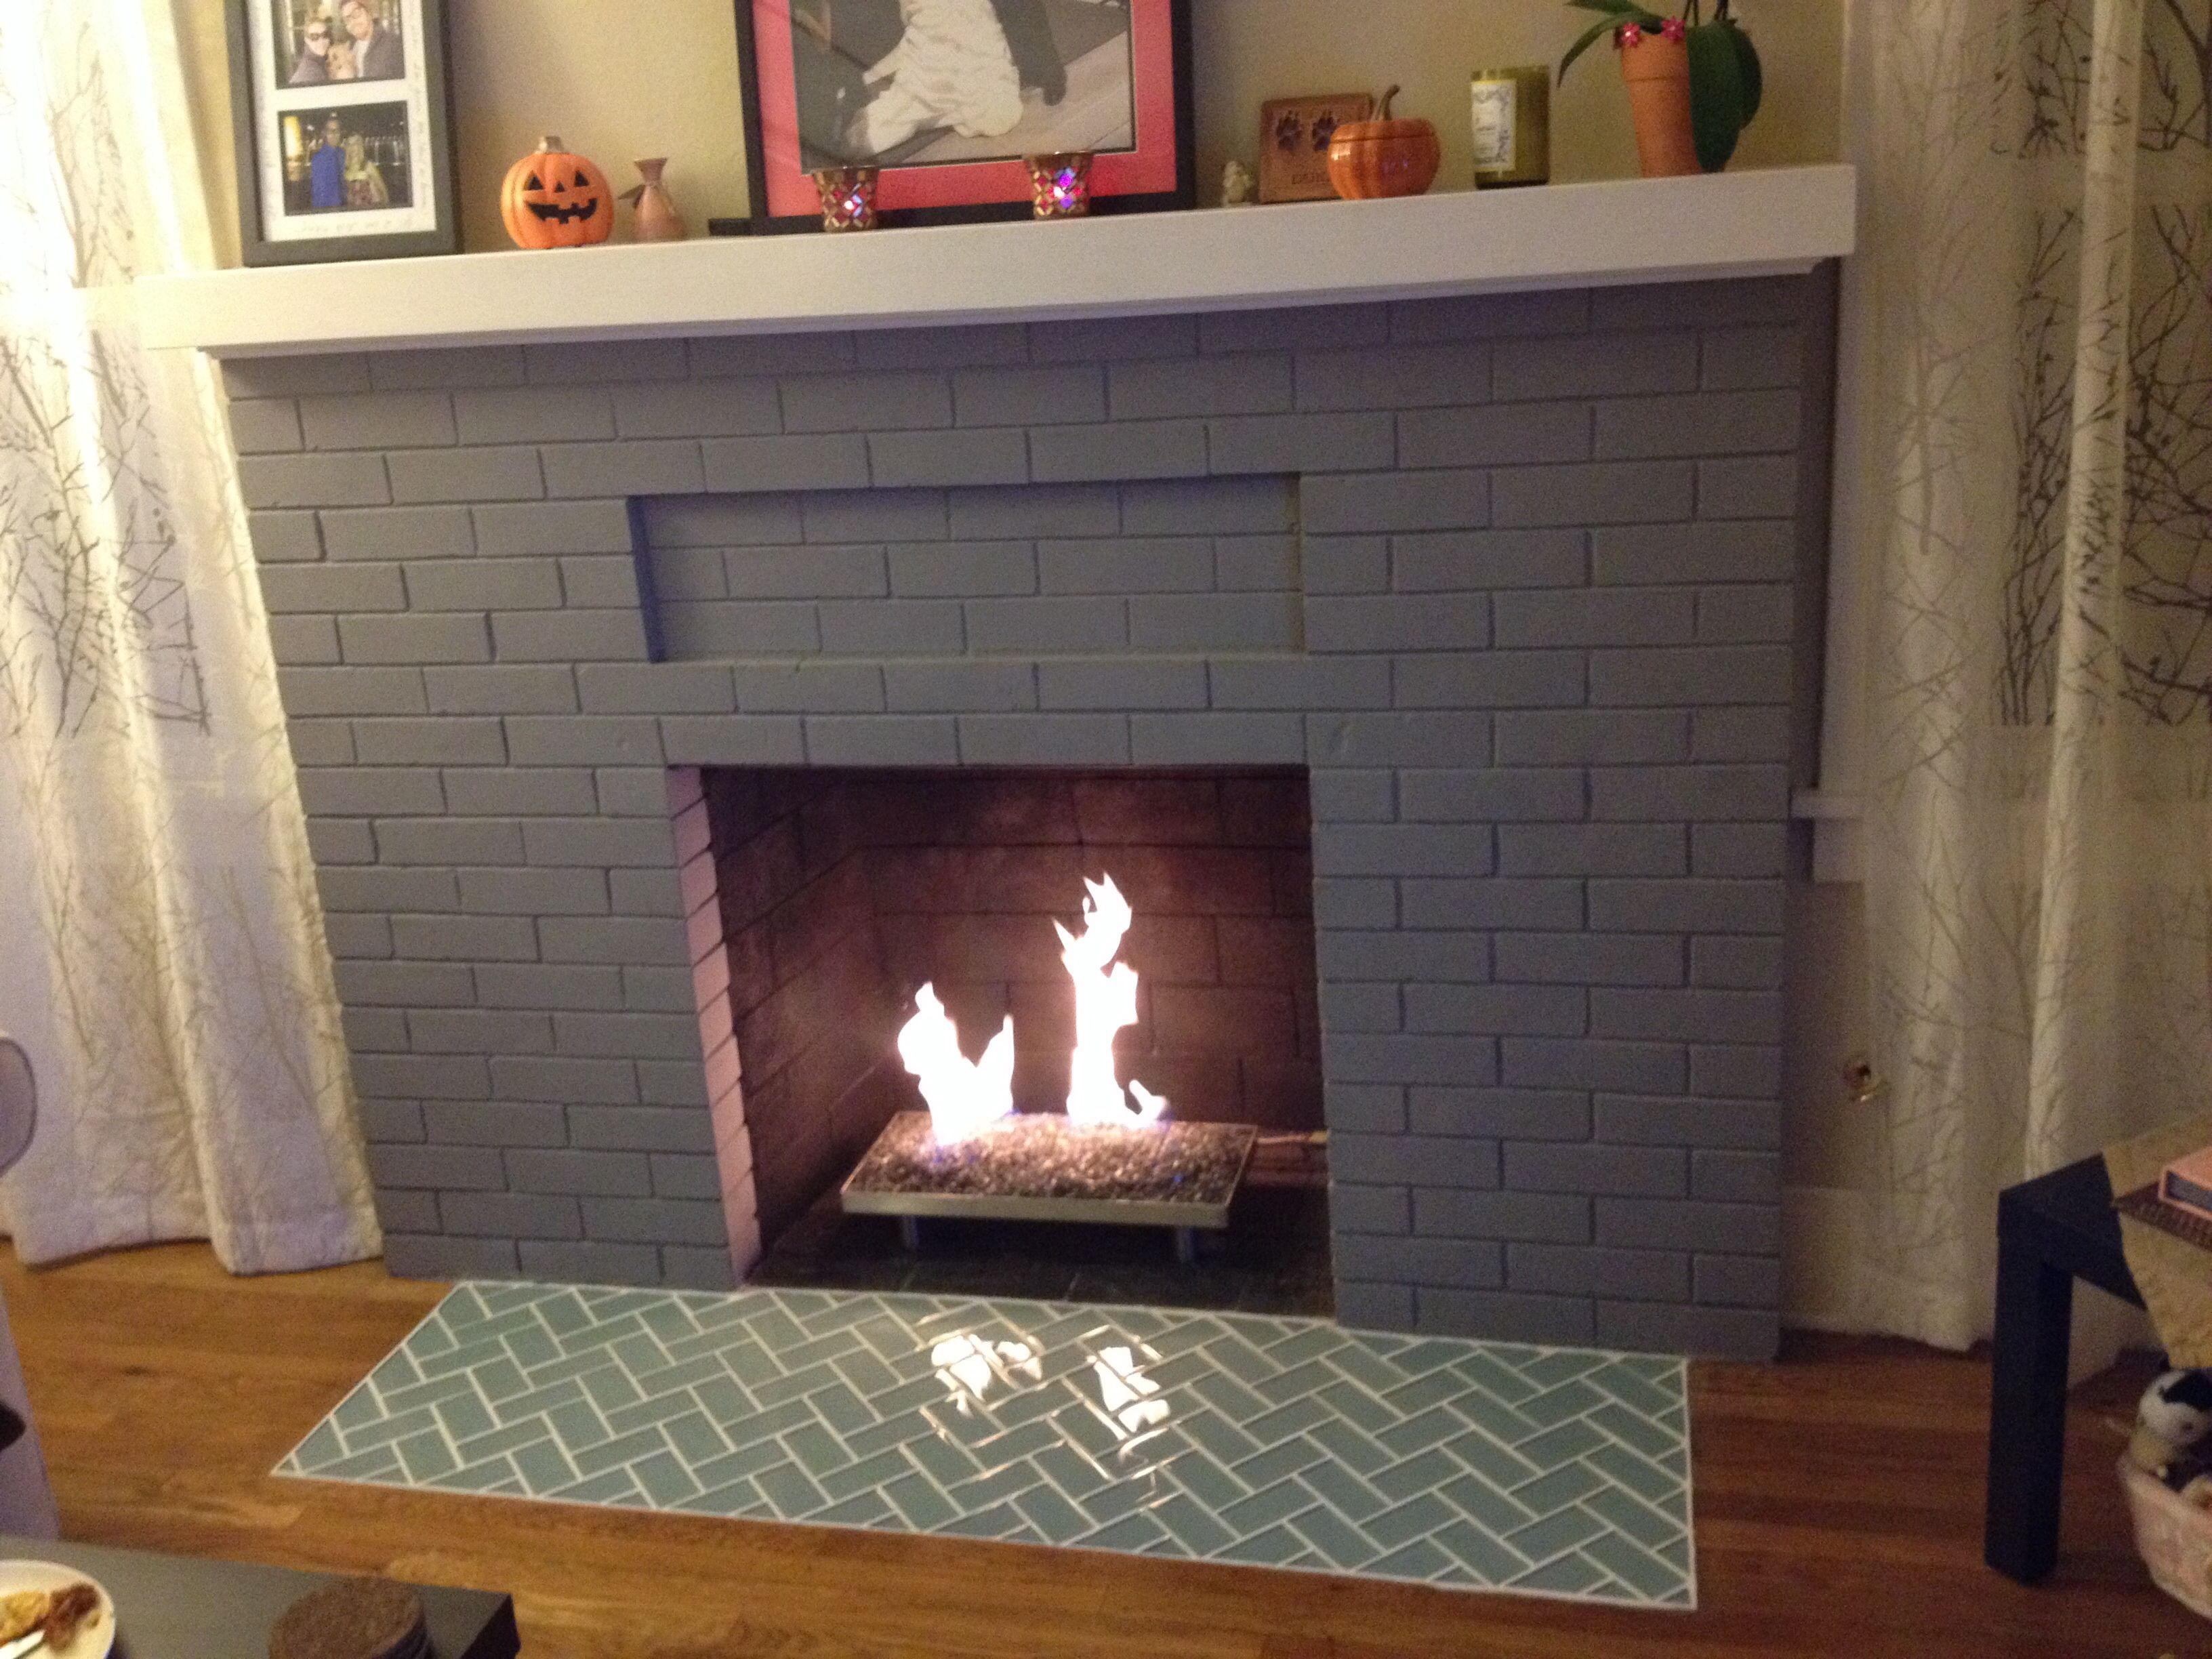 Tile For Fireplace Hearth Fireplace Ideas - Brick fireplace tile ideas